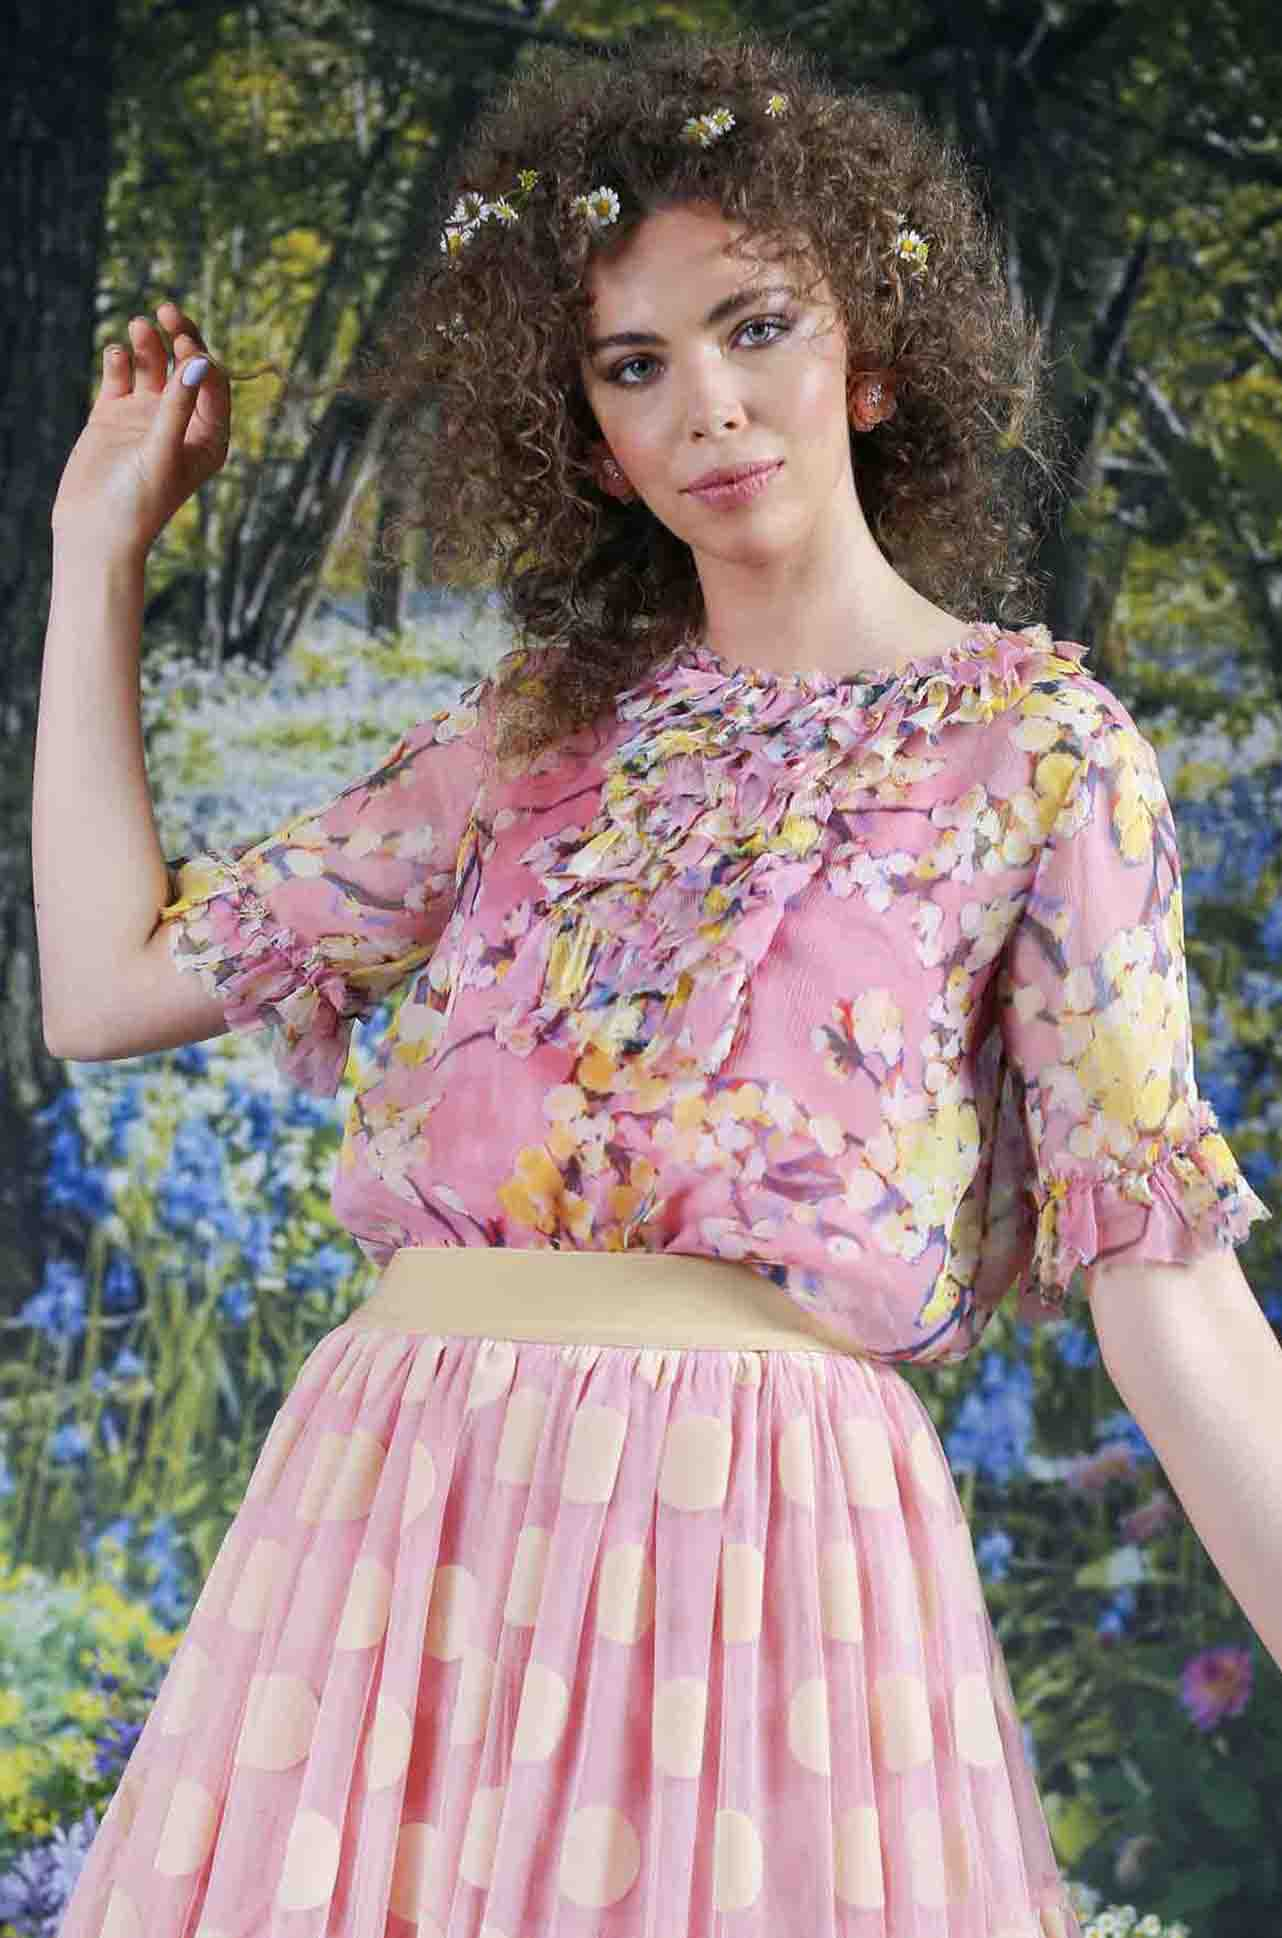 Trelise_Cooper_Cherry_Blossom_Girl_Just_For_Frills_Top_Blouse_Shirt_Pink_Blossom_www.zambezee.com.au